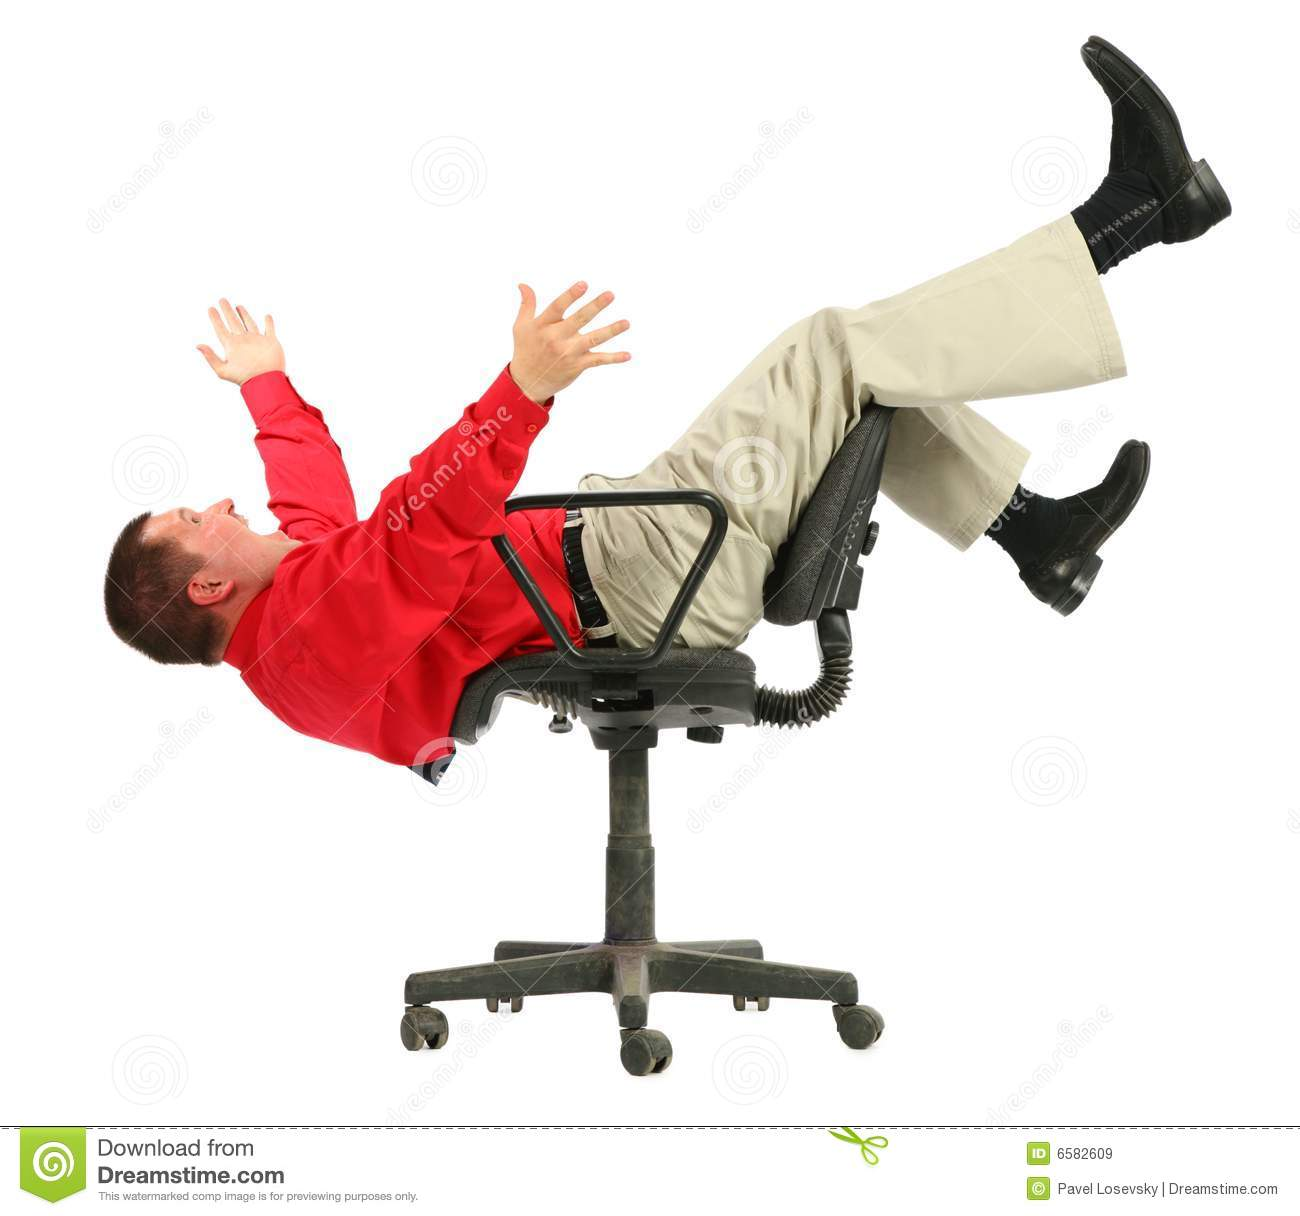 handstand chair holly hunt siren businessman in red shirt falls from chairs upside royalty